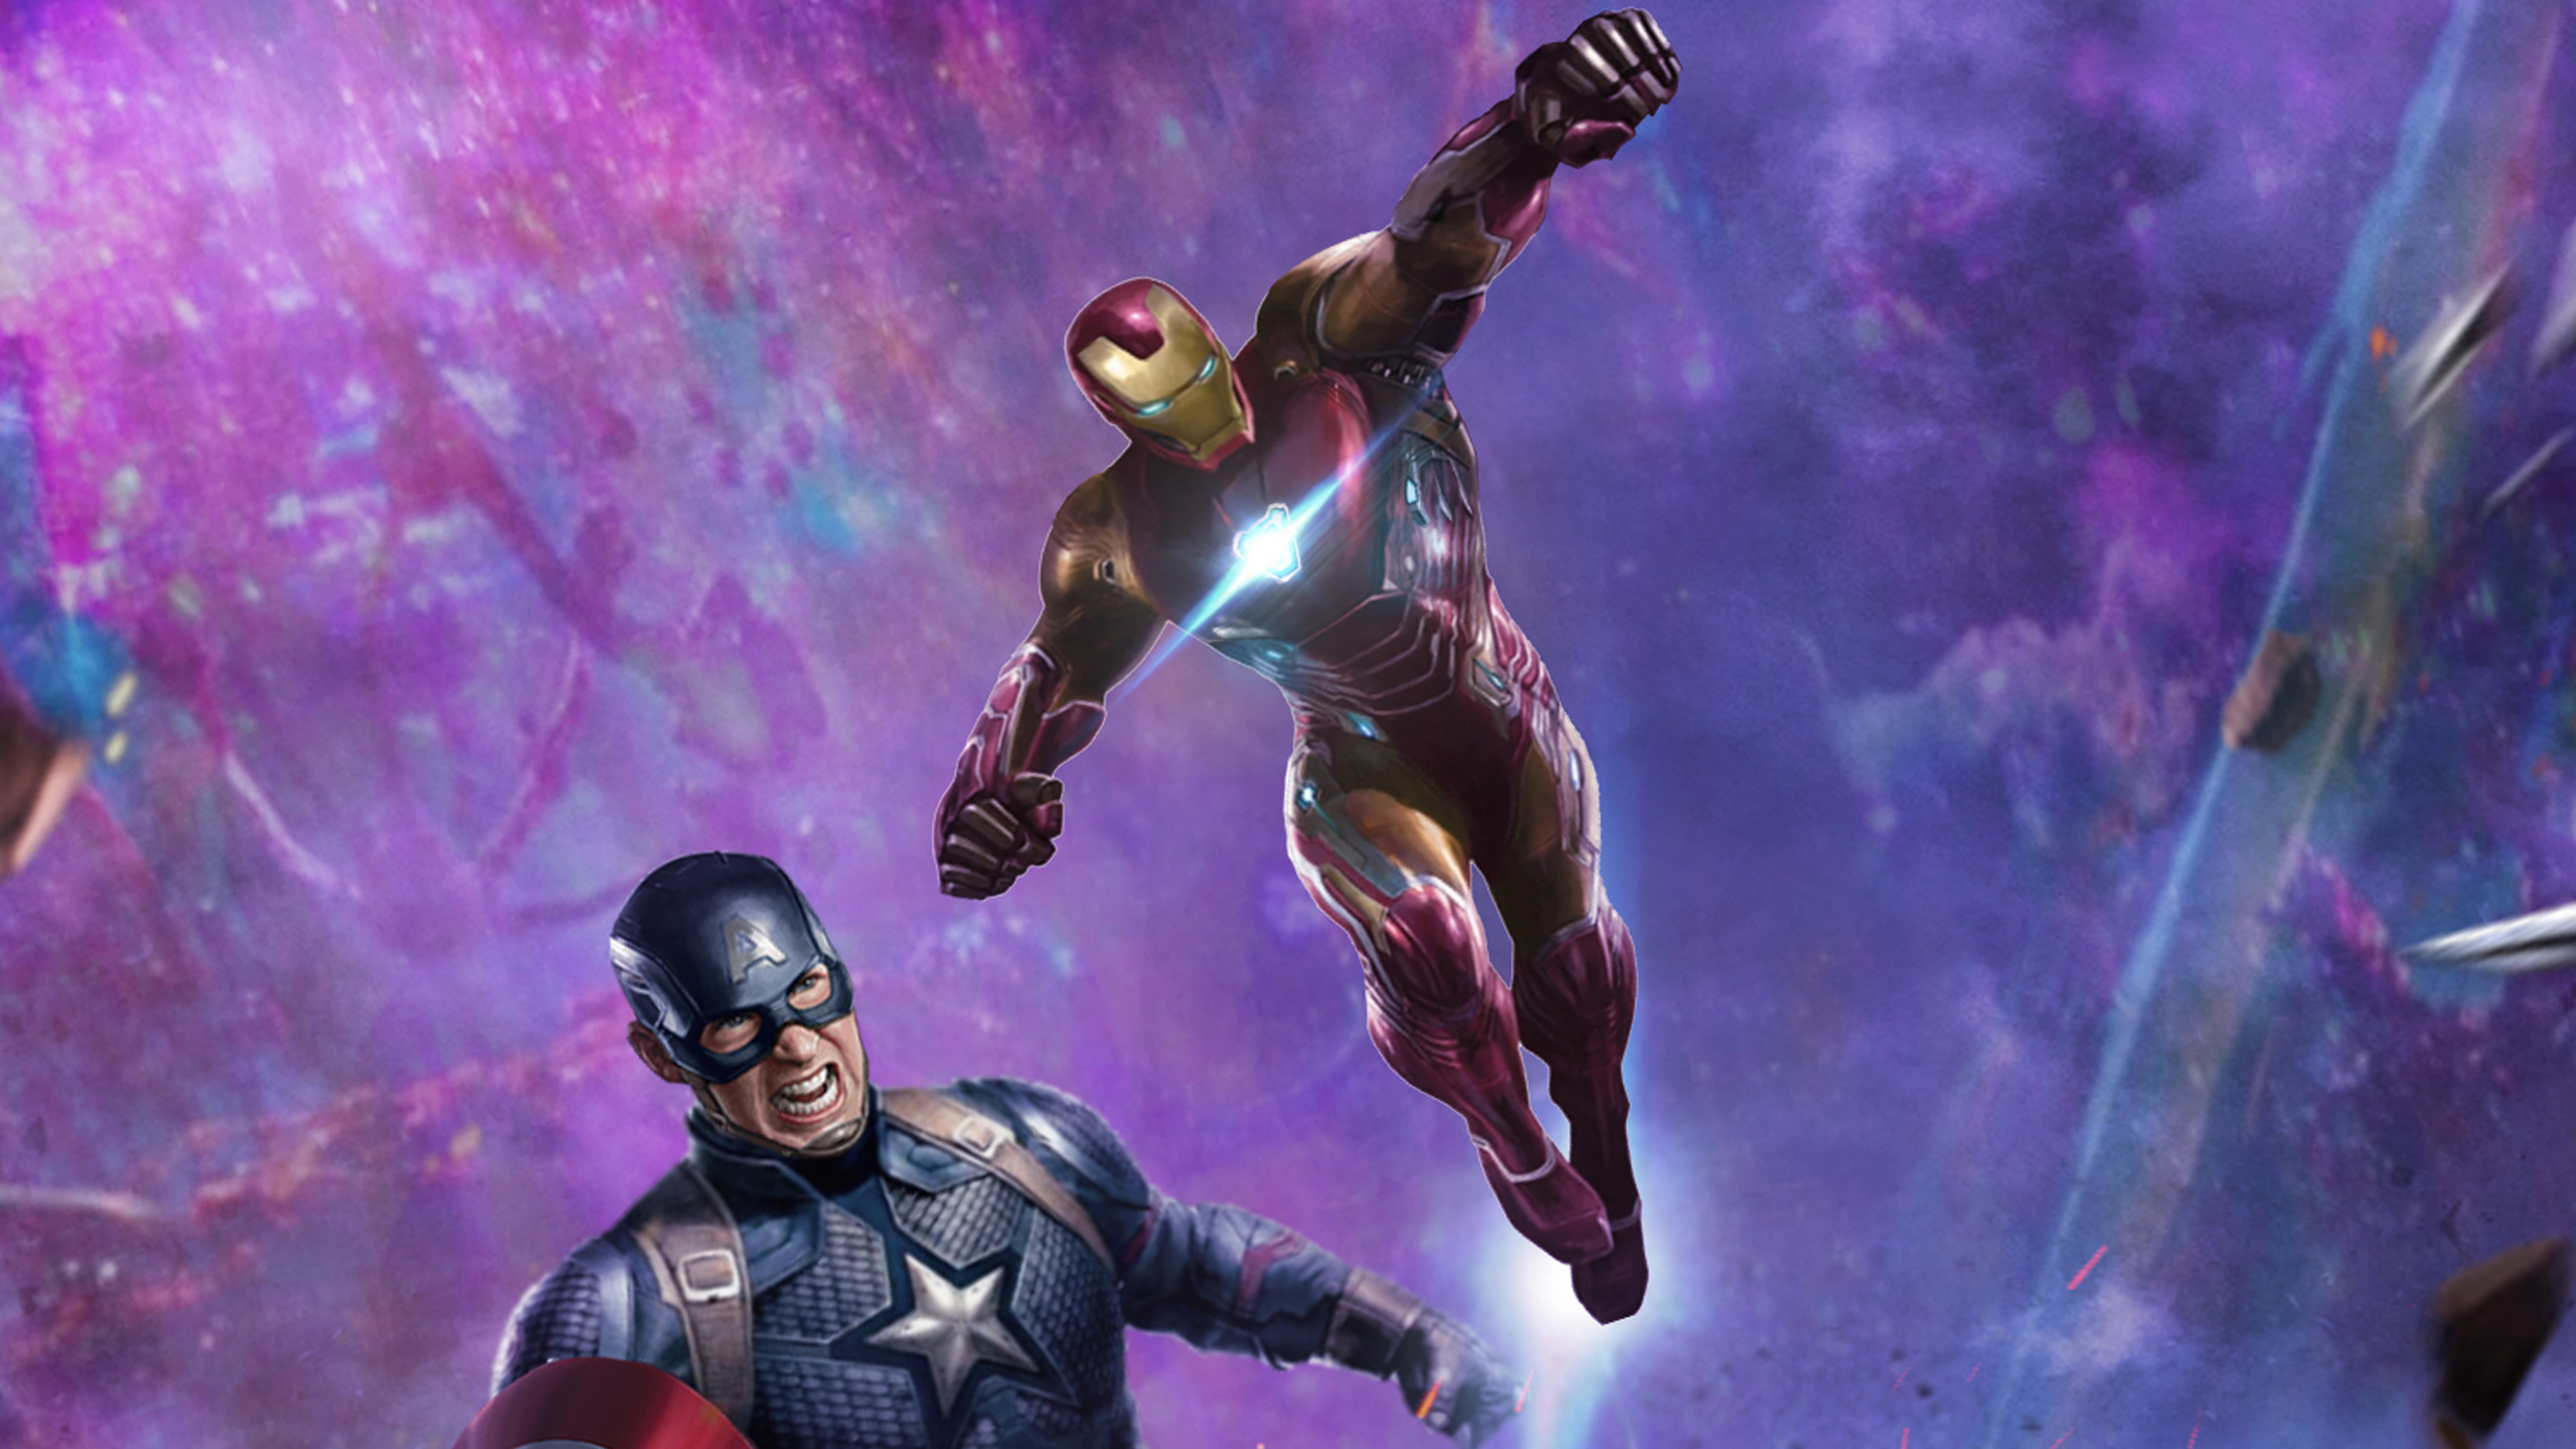 iron man and captain america in avengers end game 4k 1553074134 - Iron Man And Captain America In Avengers End Game 4k - superheroes wallpapers, movies wallpapers, iron man wallpapers, hd-wallpapers, captain america wallpapers, avengers end game wallpapers, 5k wallpapers, 4k-wallpapers, 2019 movies wallpapers